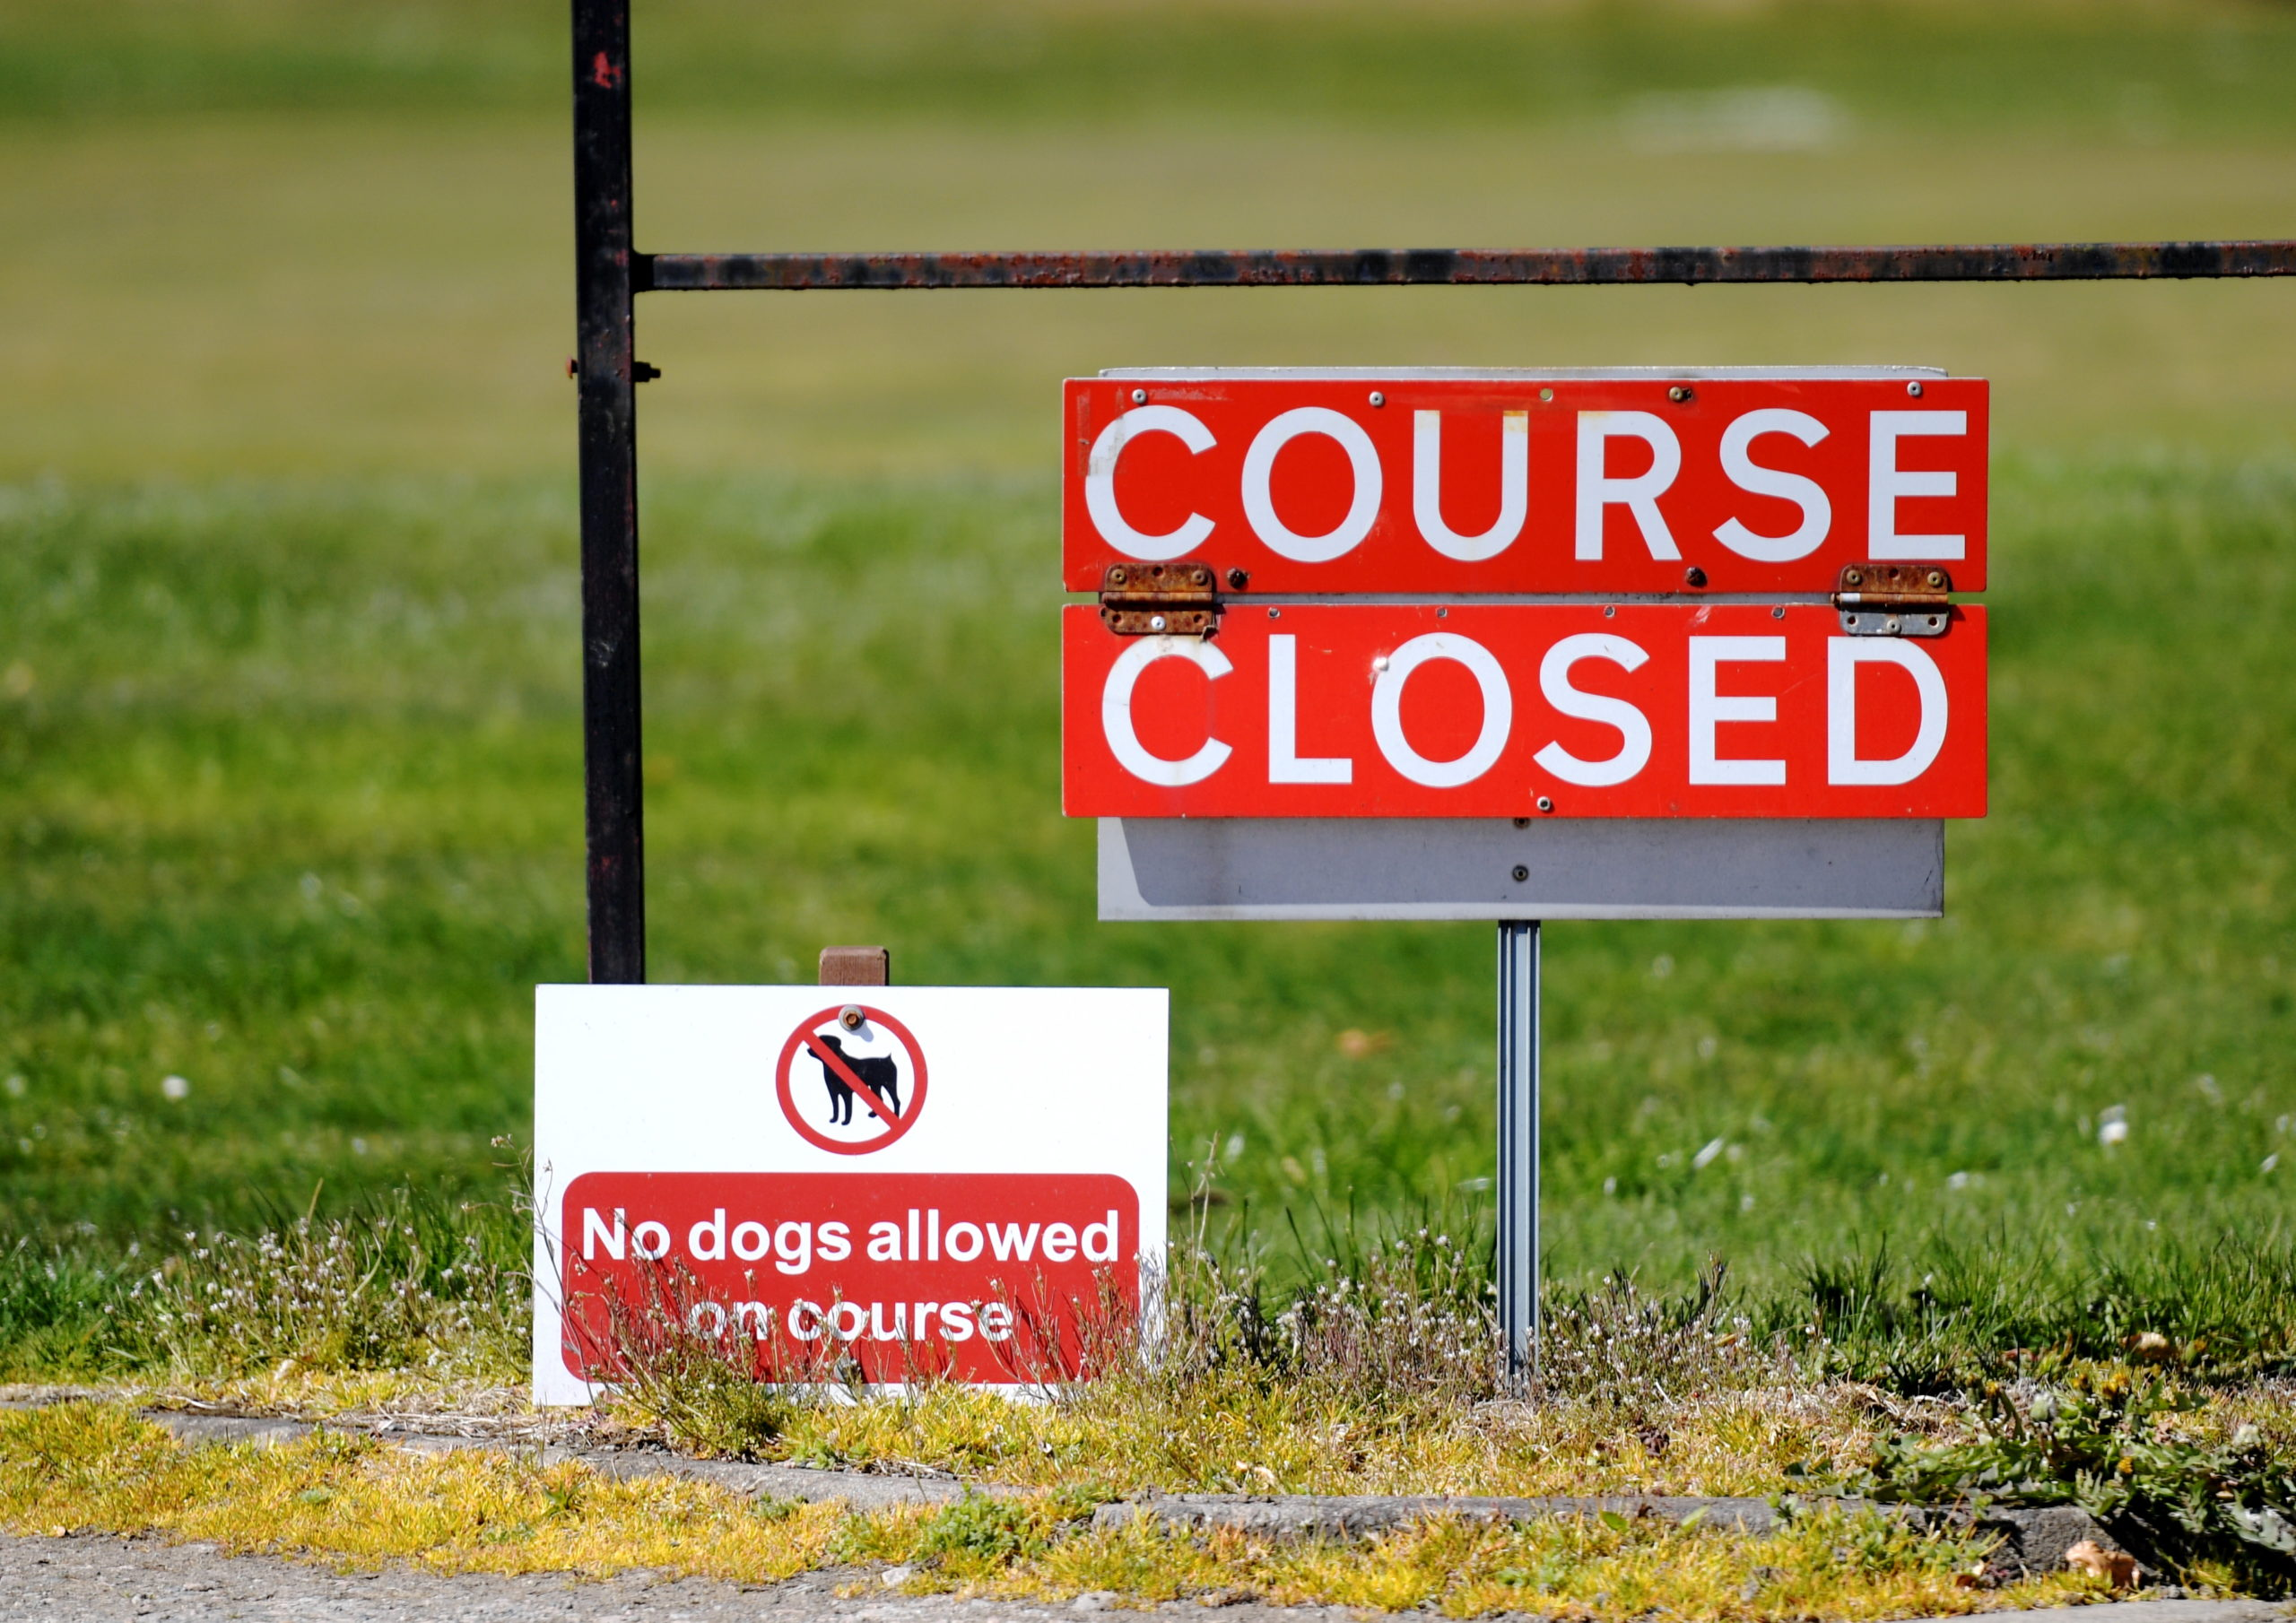 Some golf clubs hope to reopen on May 29 under phase 1